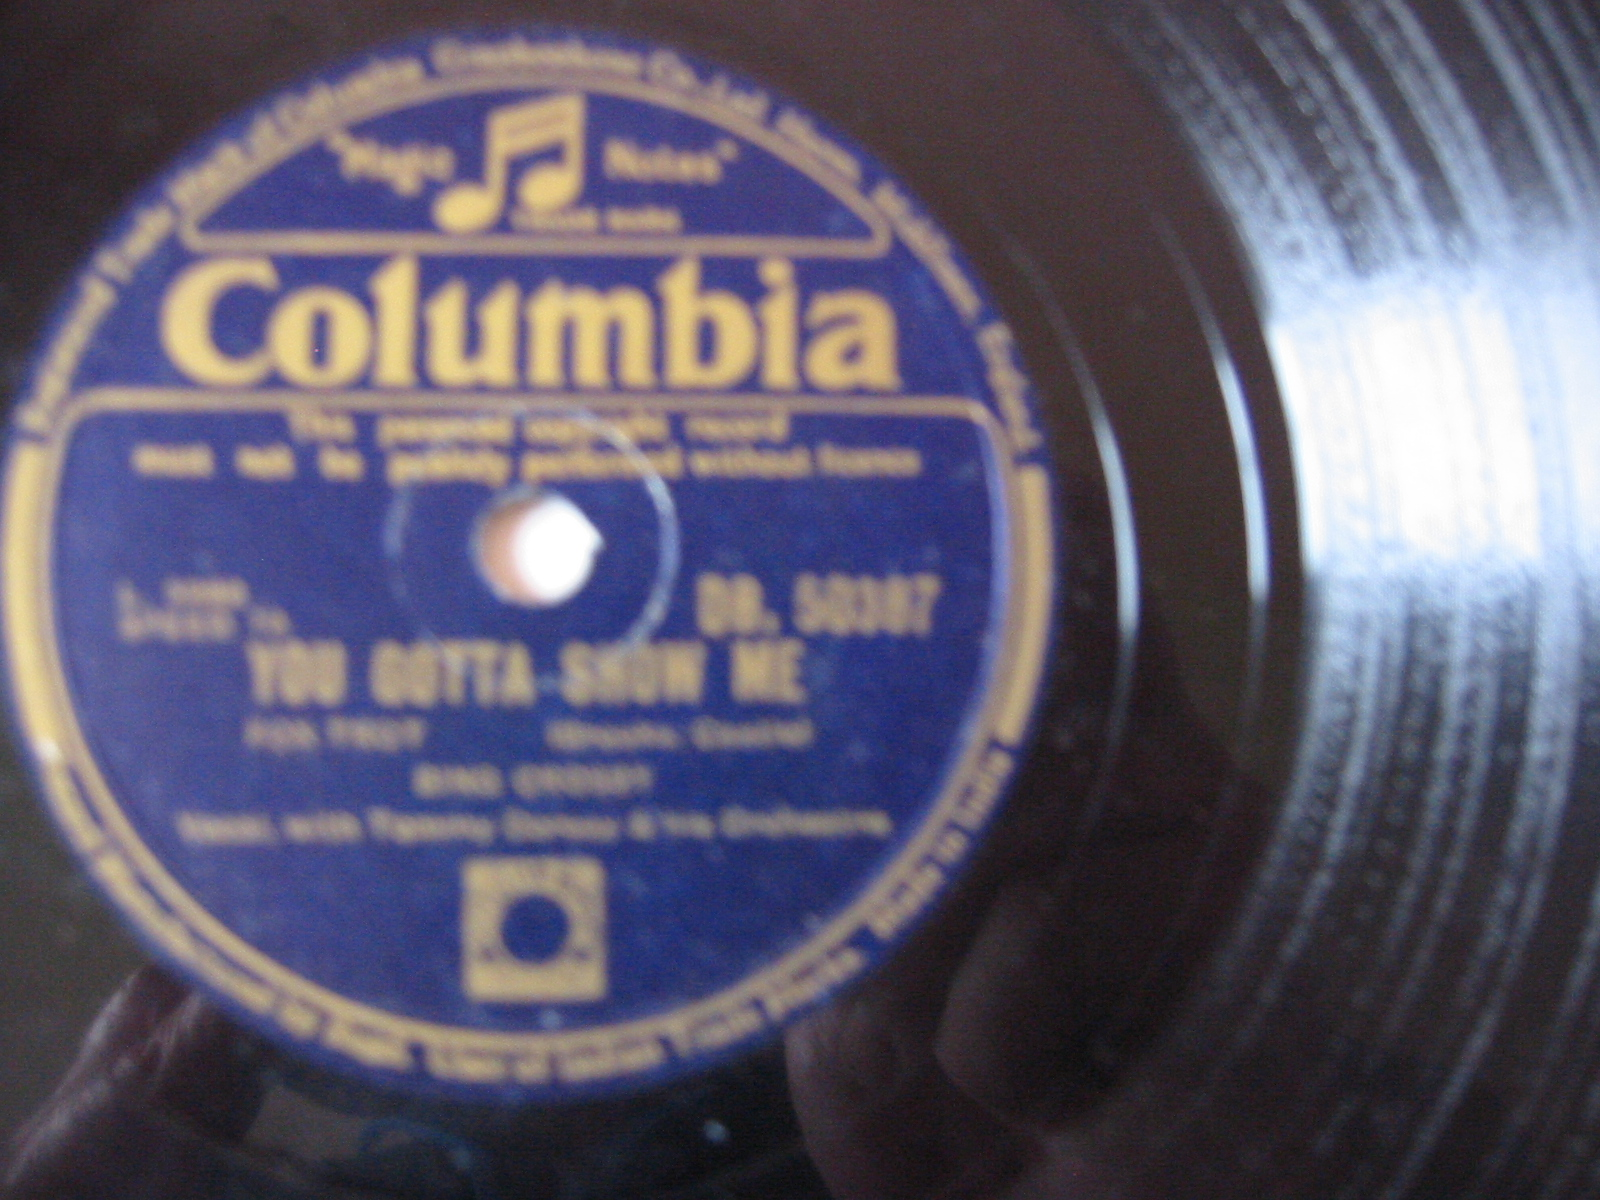 Bing Crosby - You gotta show me - Columbia India